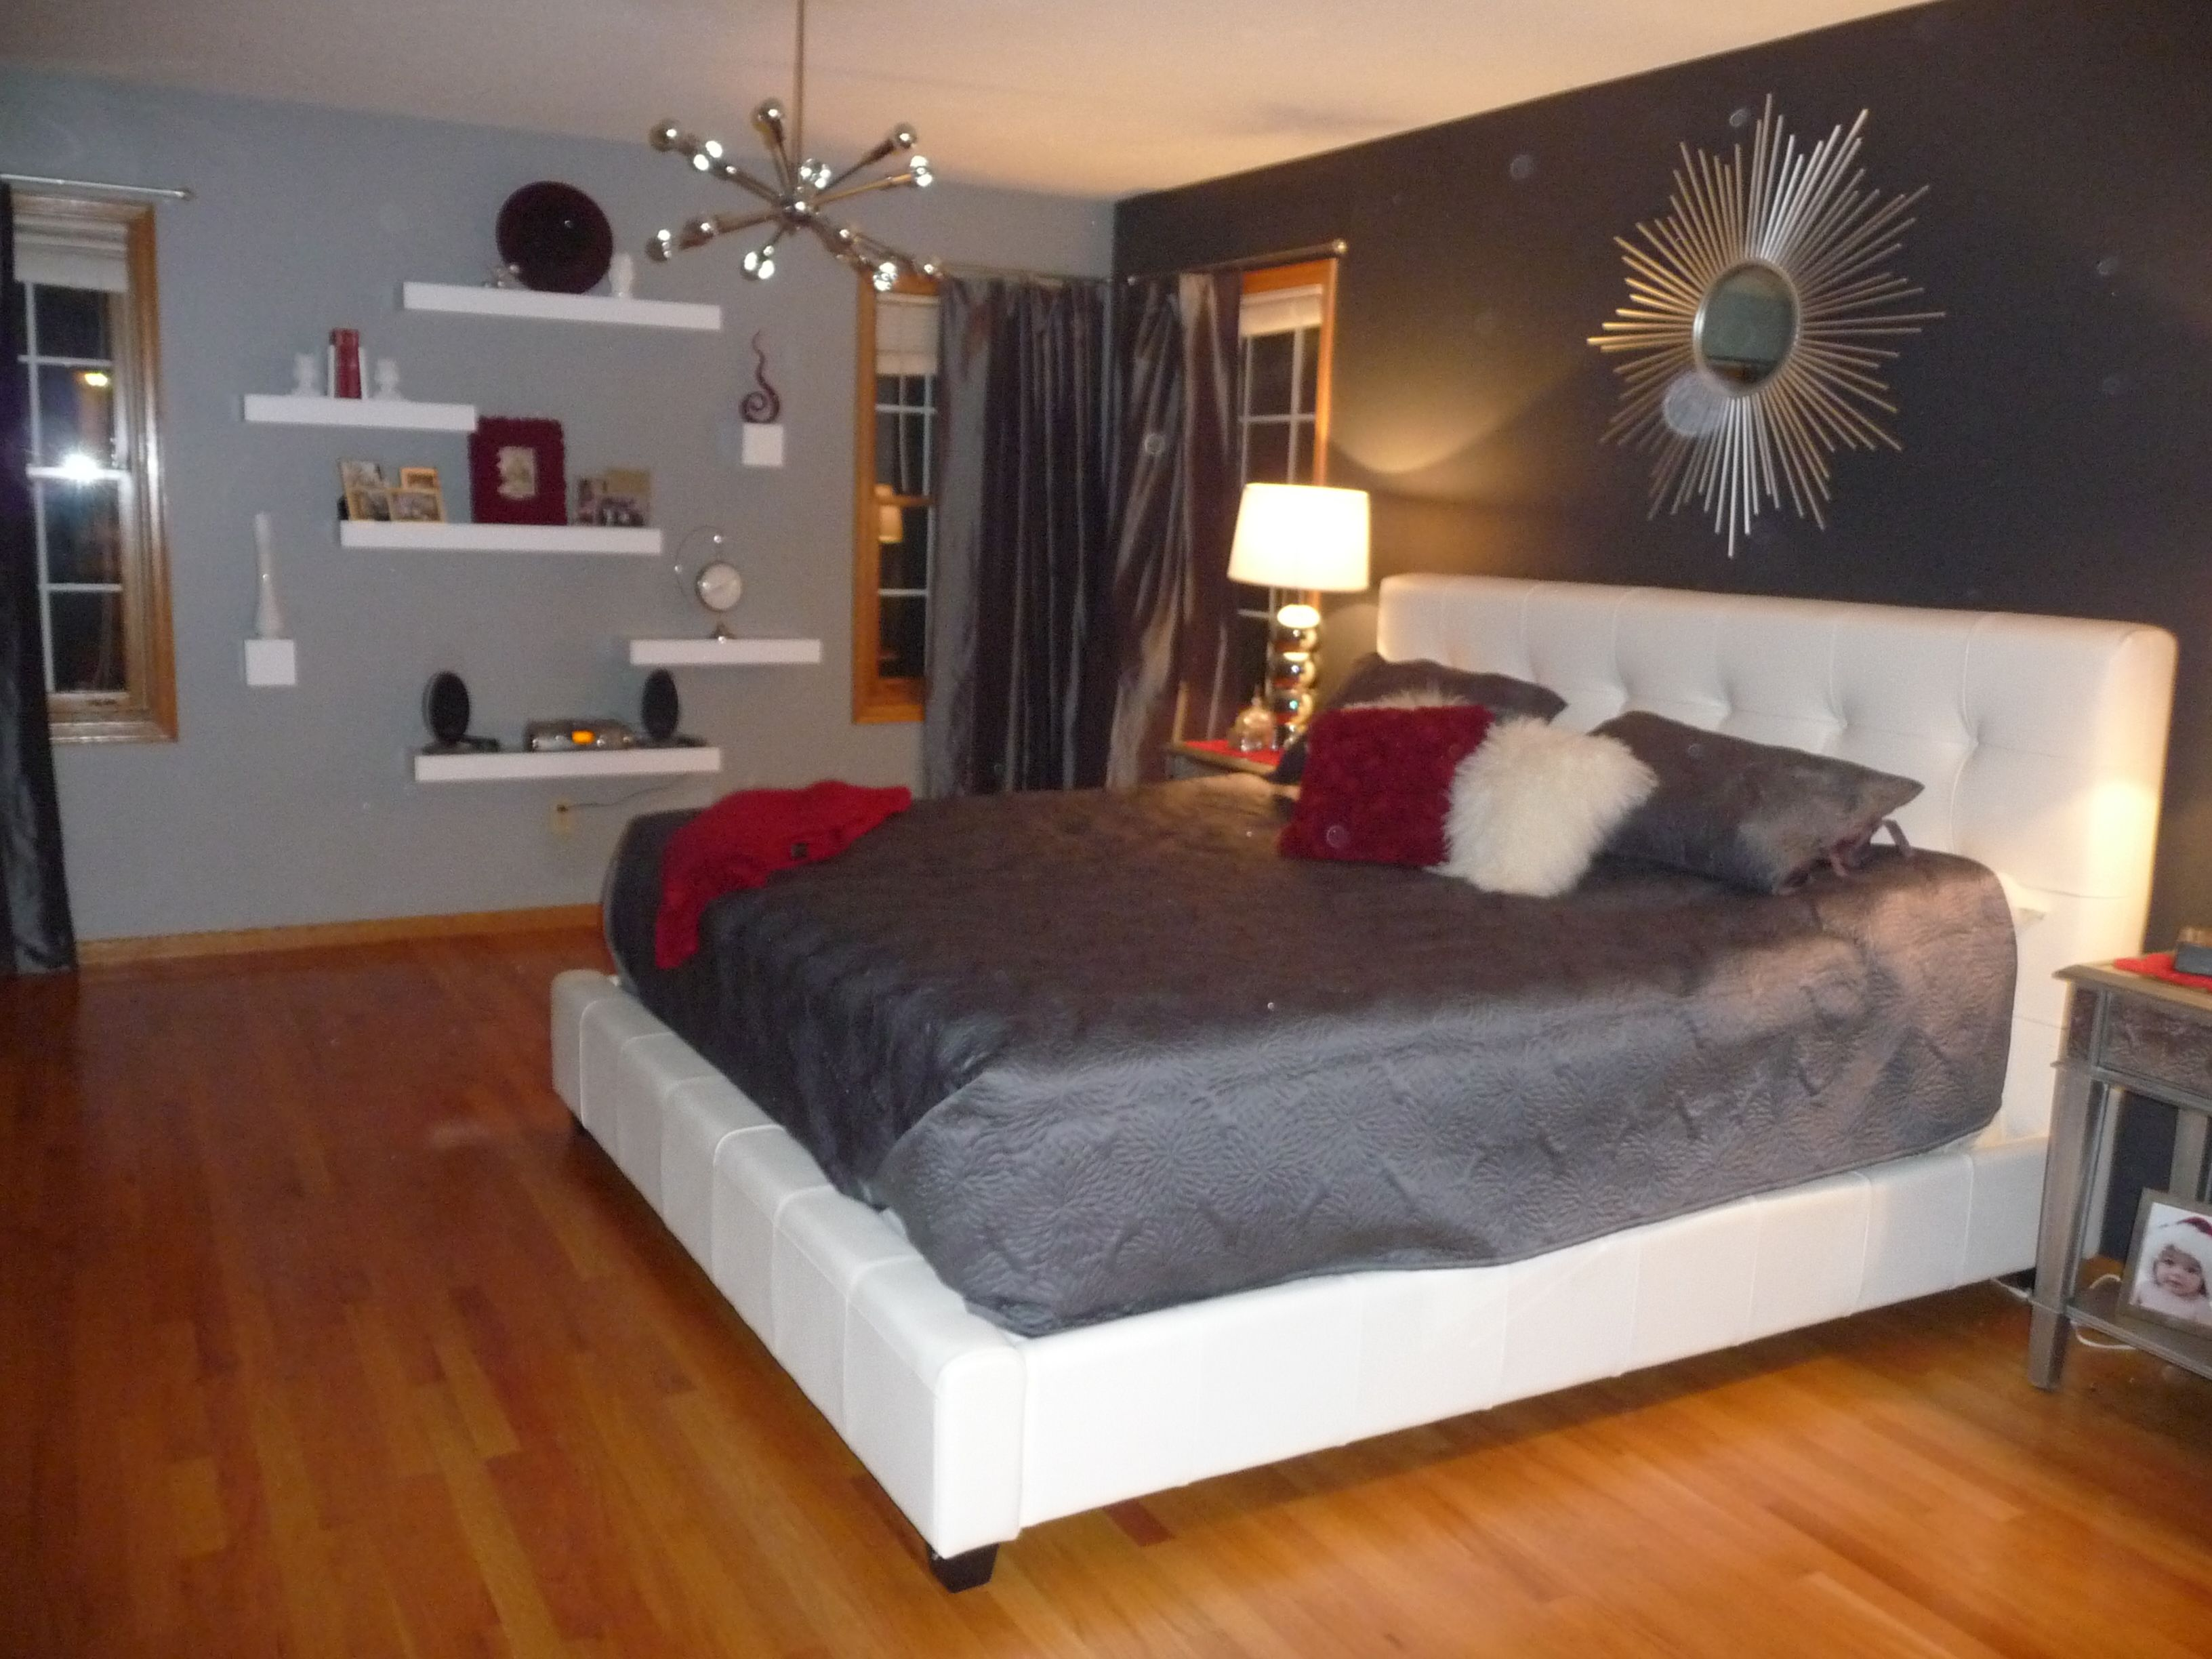 Bedroom Decorations Pinterest Another View Of Our Master Bedroom Decorating Ideas